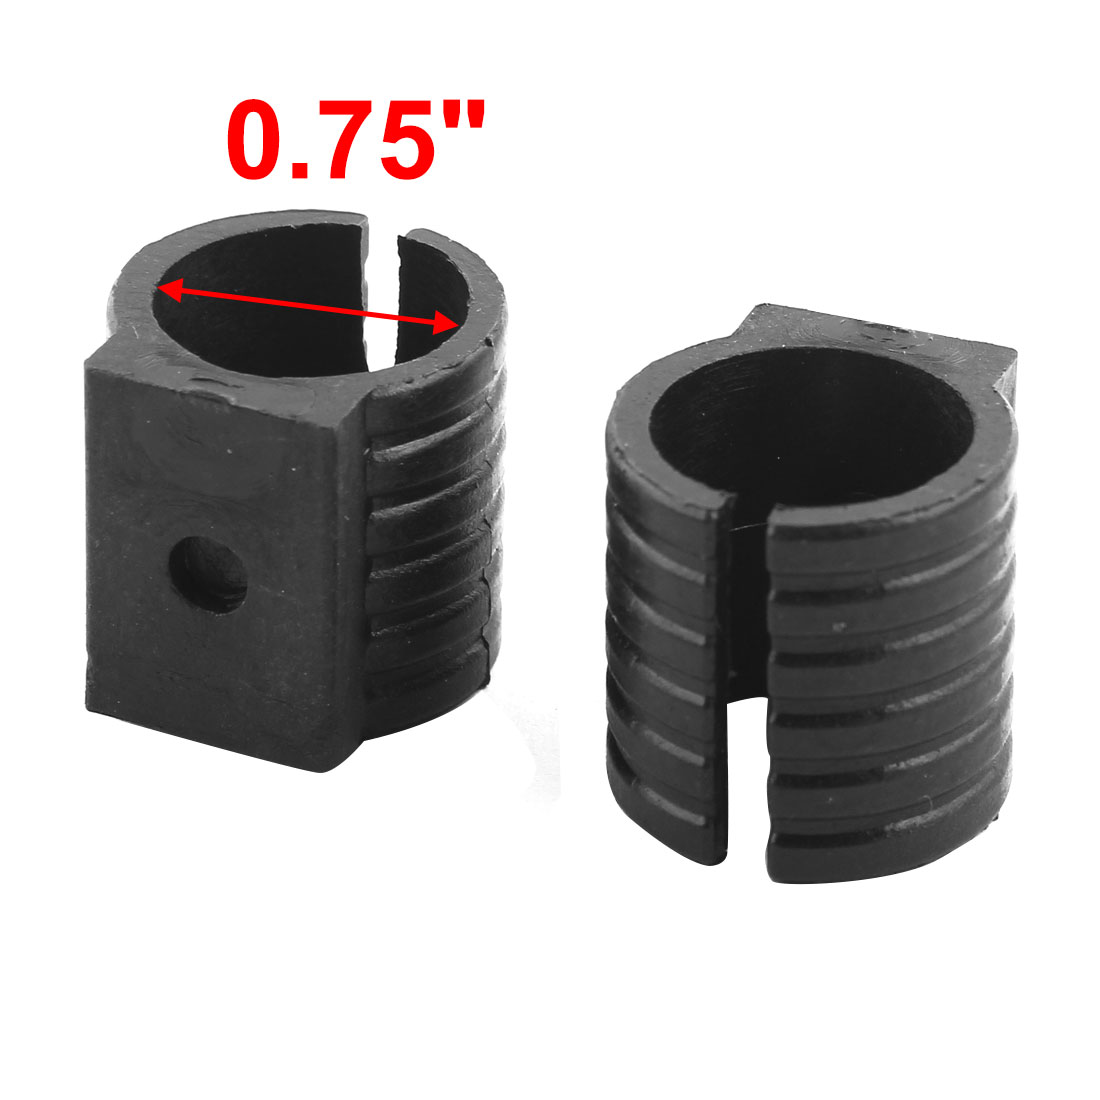 Chair Foot Caps Plastic U Shaped Chair Pipe Foot Clamp Pads Glides Caps Black 19mm Fit Dia 50pcs